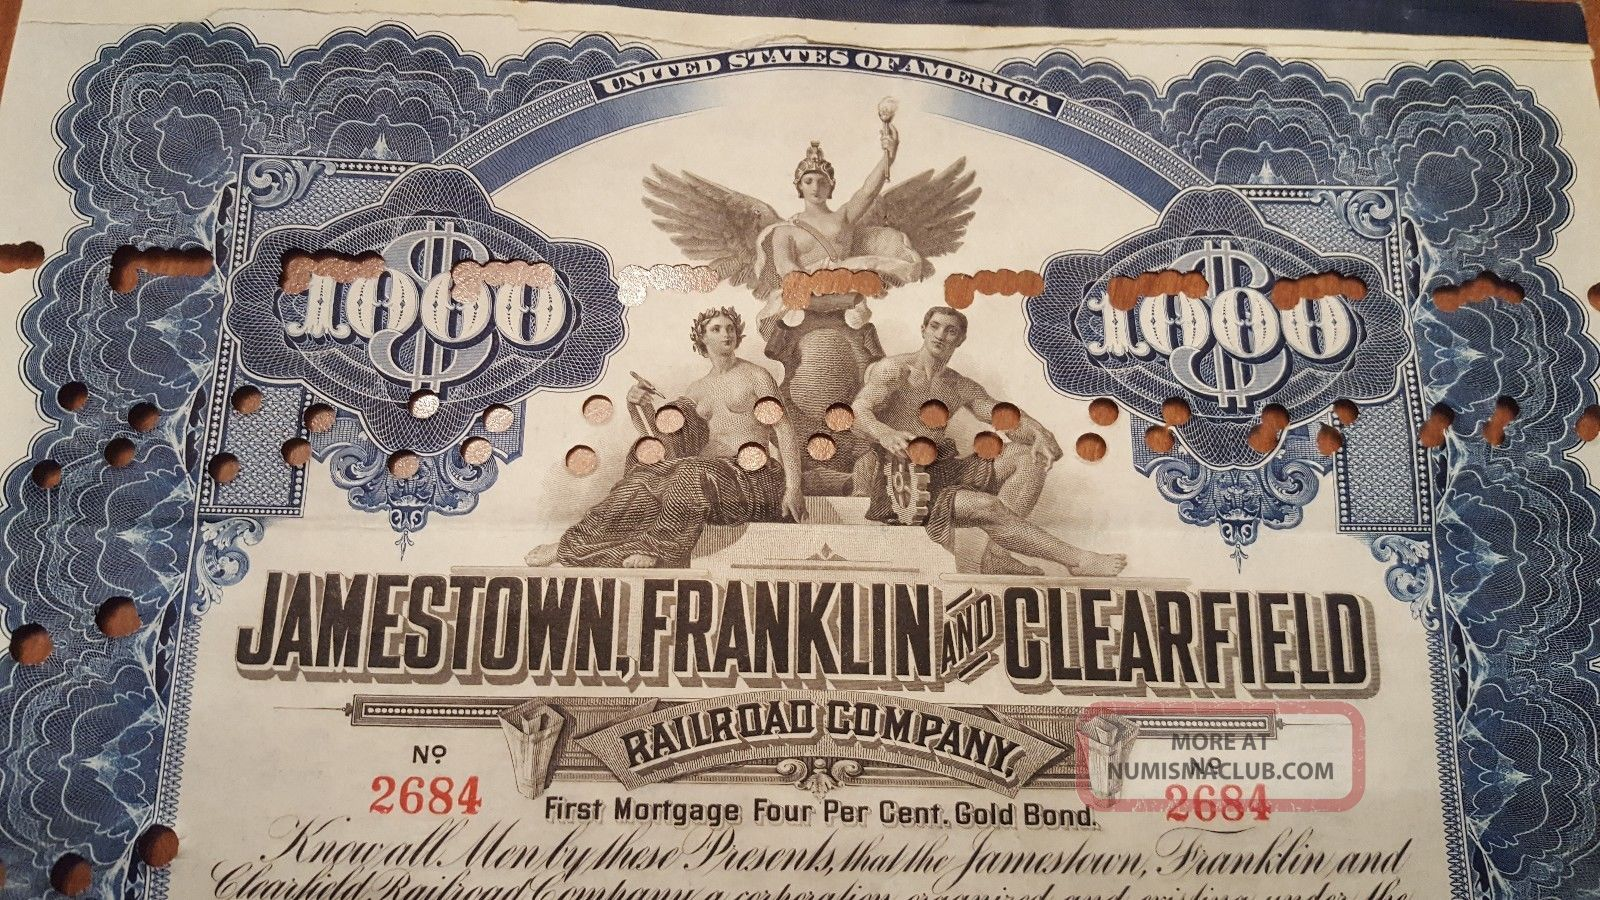 Jamestown,  Franklin & Clearfield Railroad Bond Stock Certificate N.  Y Central Transportation photo